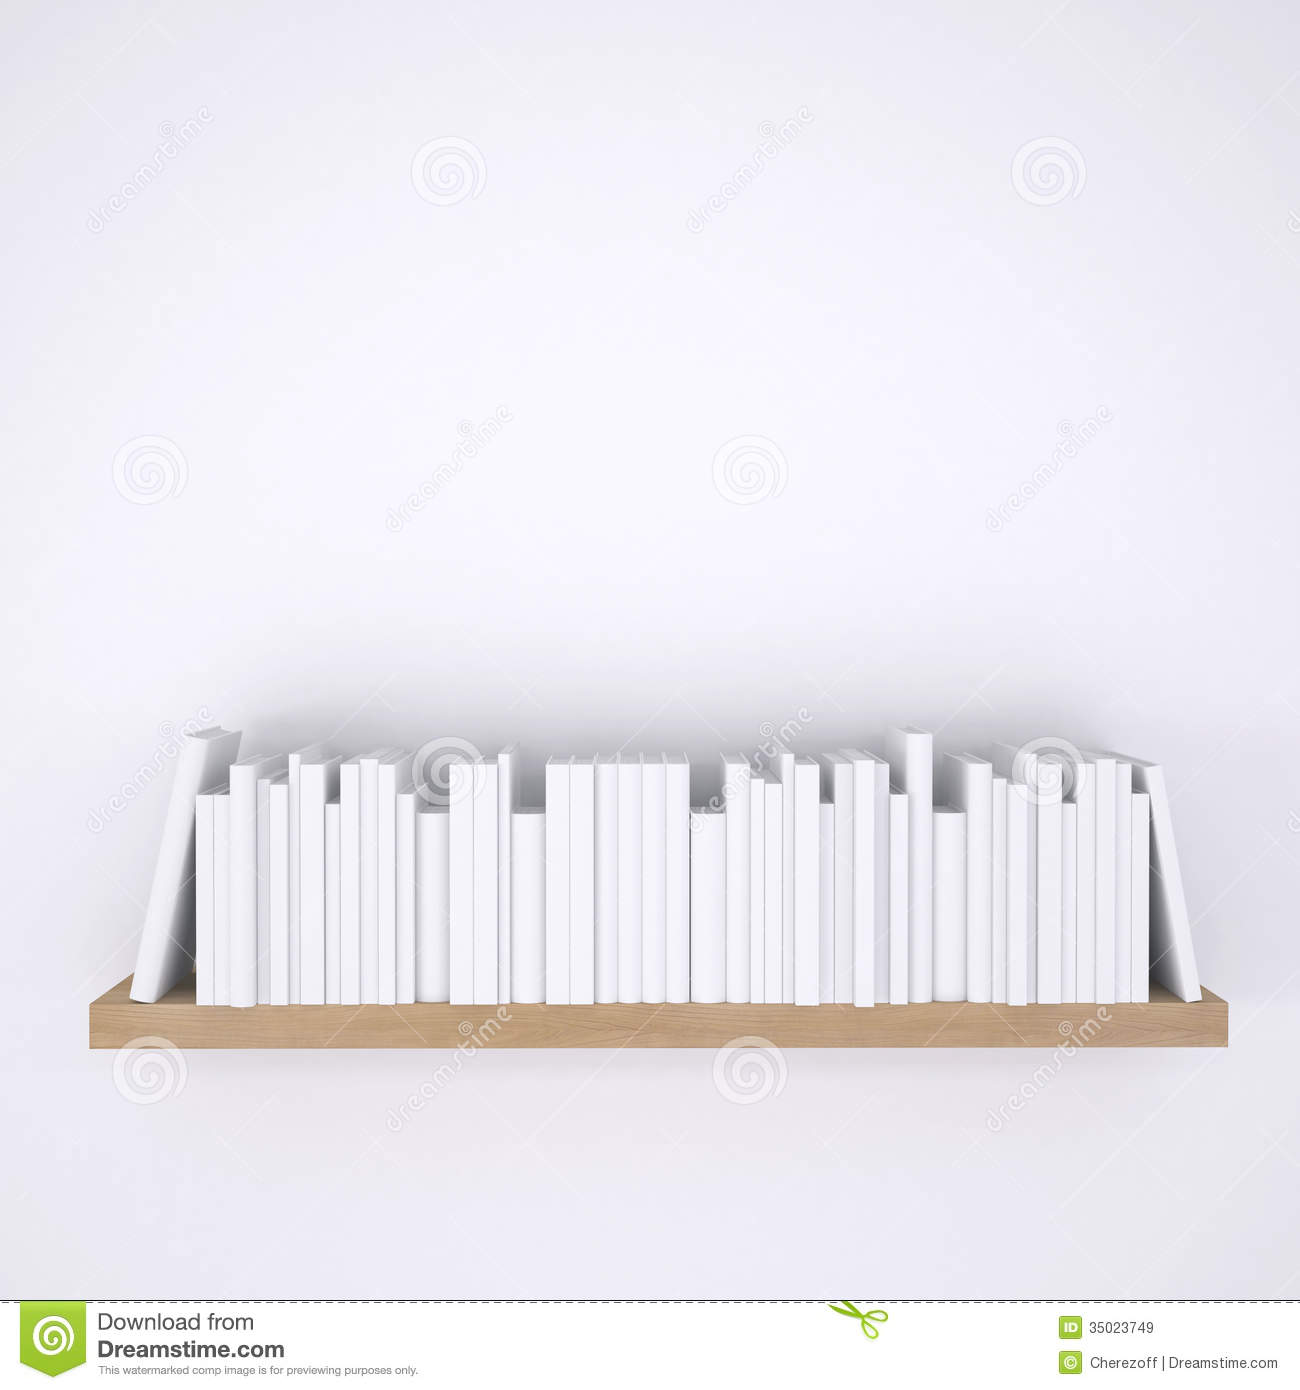 White Wall Book Rack Wooden Shelf With Books On White Wall Background Stock